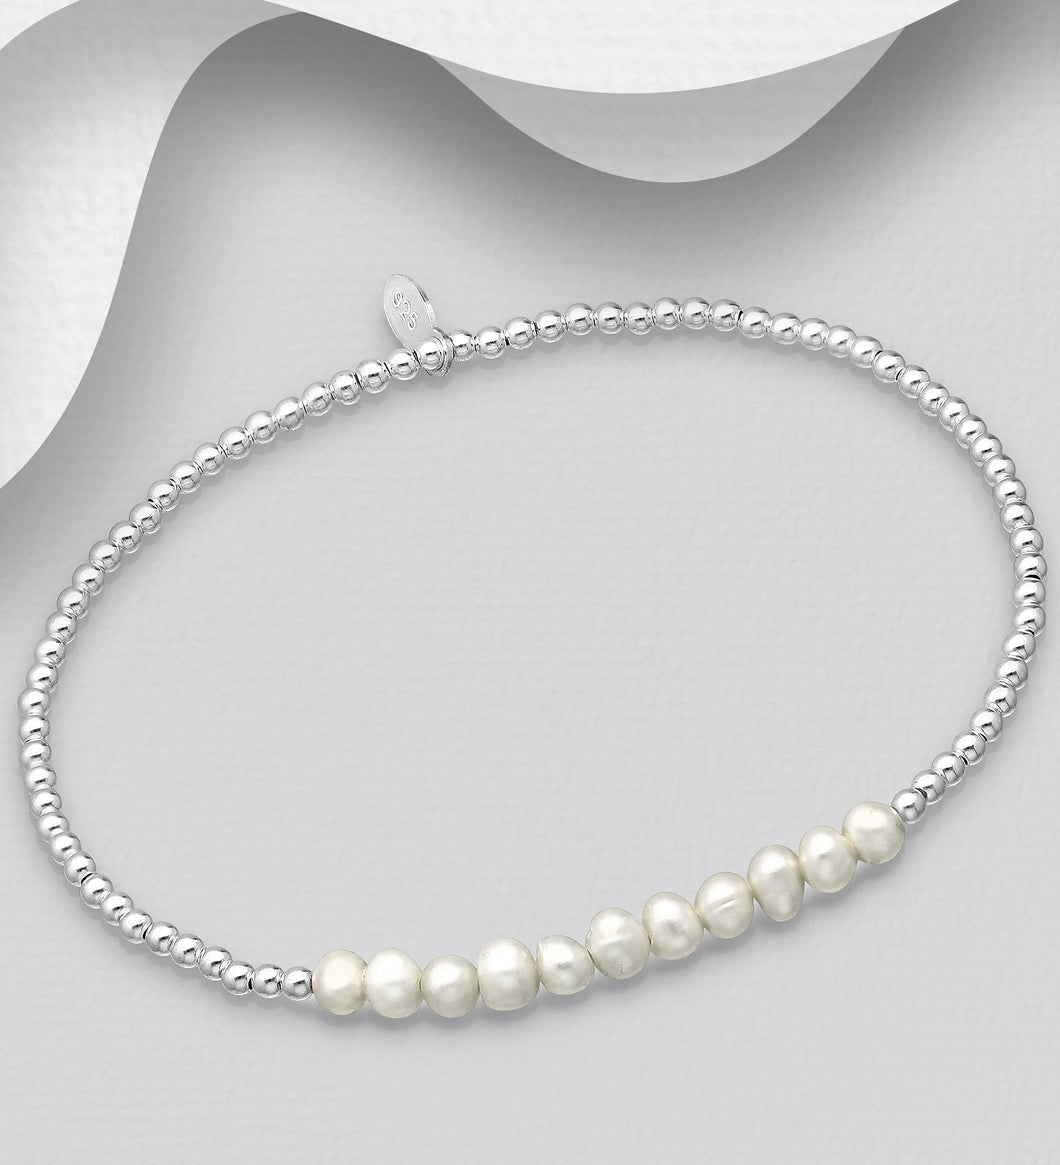 Silver Stretch Bracelet with Fresh Water Pearls